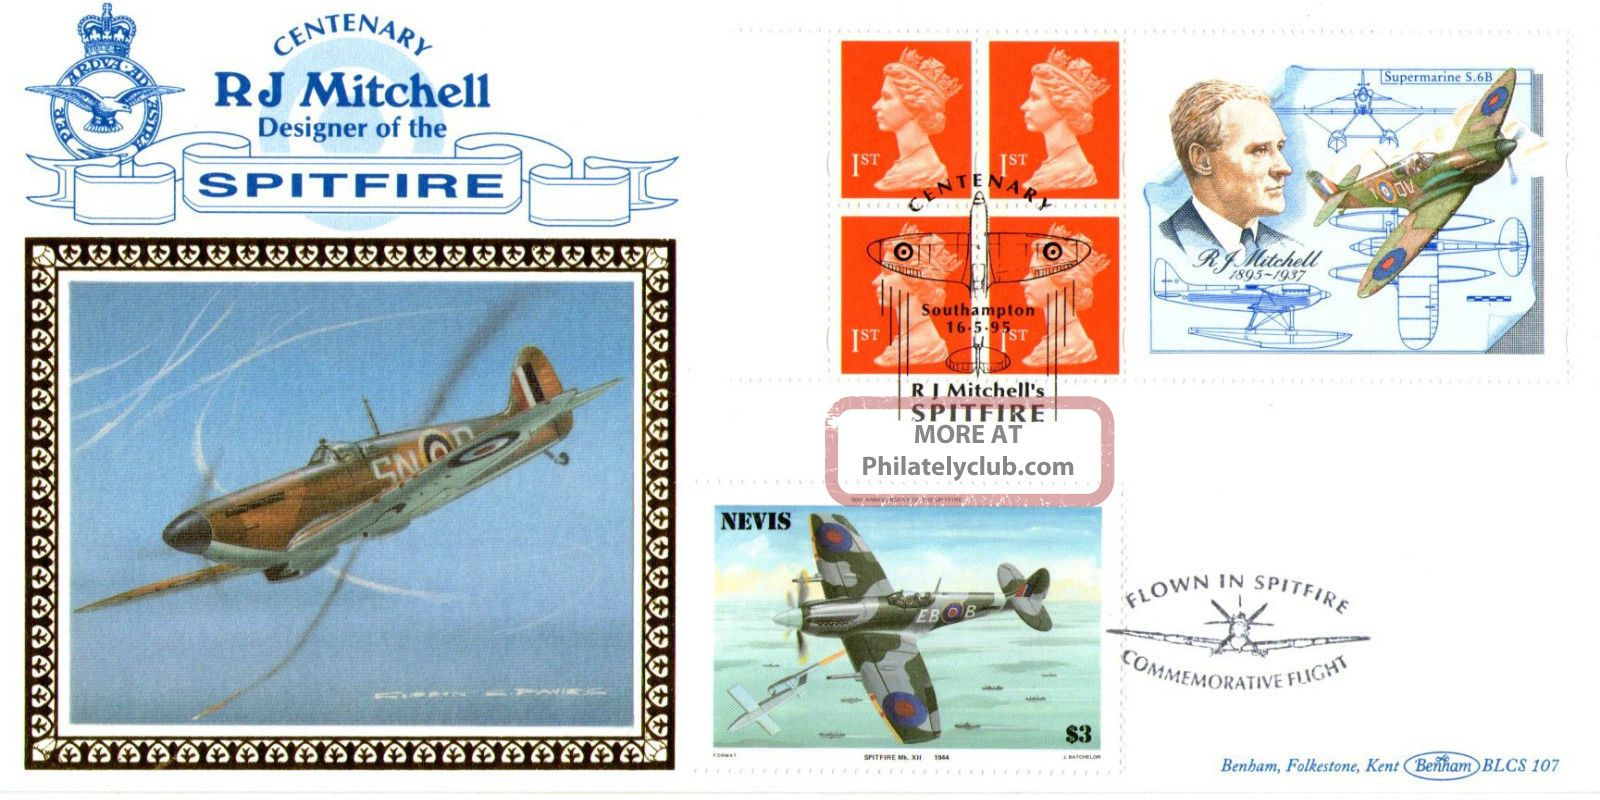 16 May 1995 Rj Mitchell Label Benham Flown Blcs 107 Fdc Spitfire Southampton Shs Transportation photo